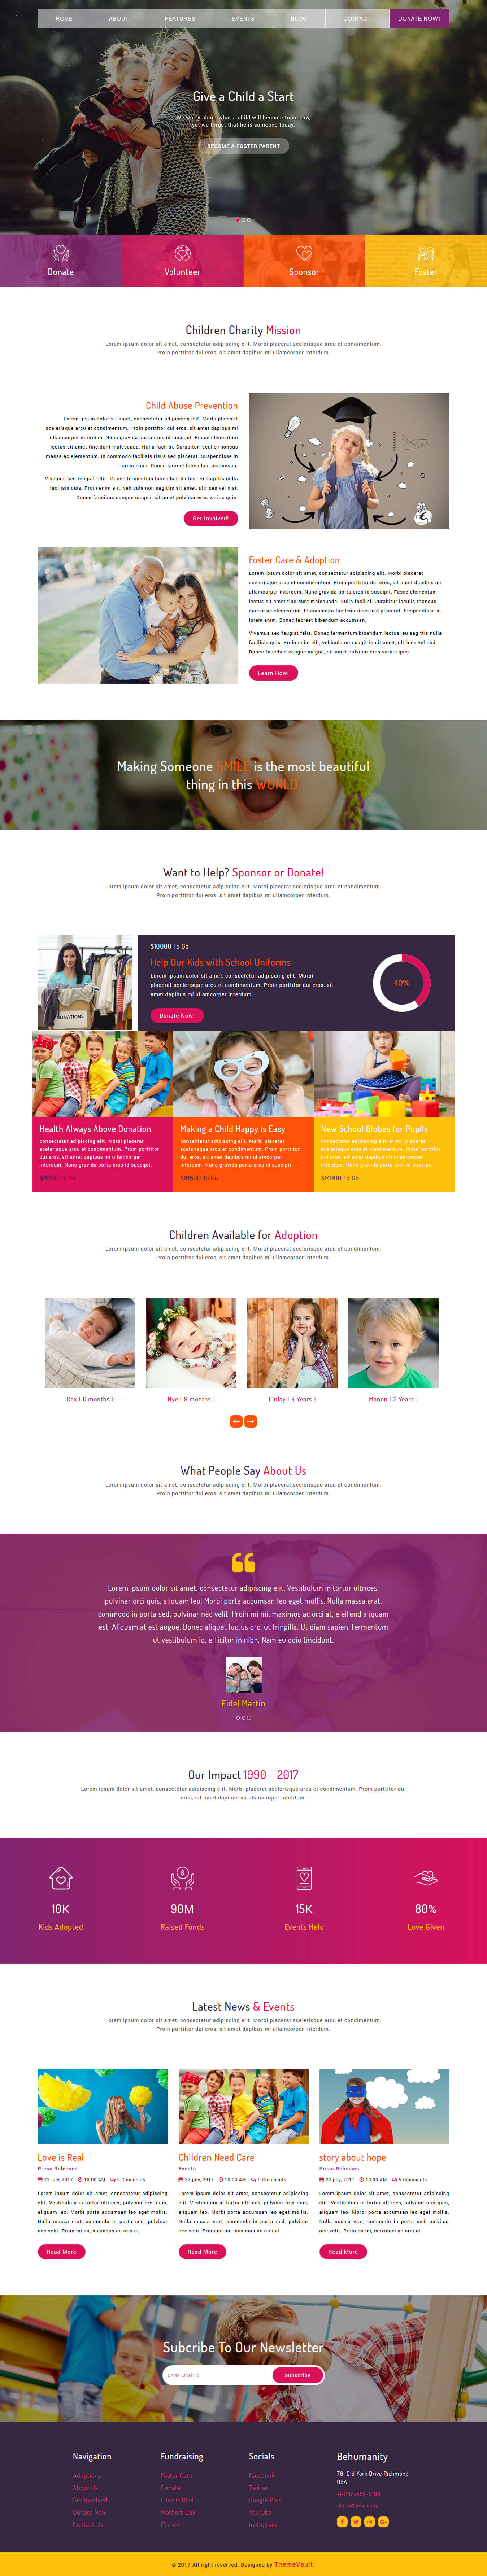 Behumanity - Best Charity HTML5 Css3 Website Template